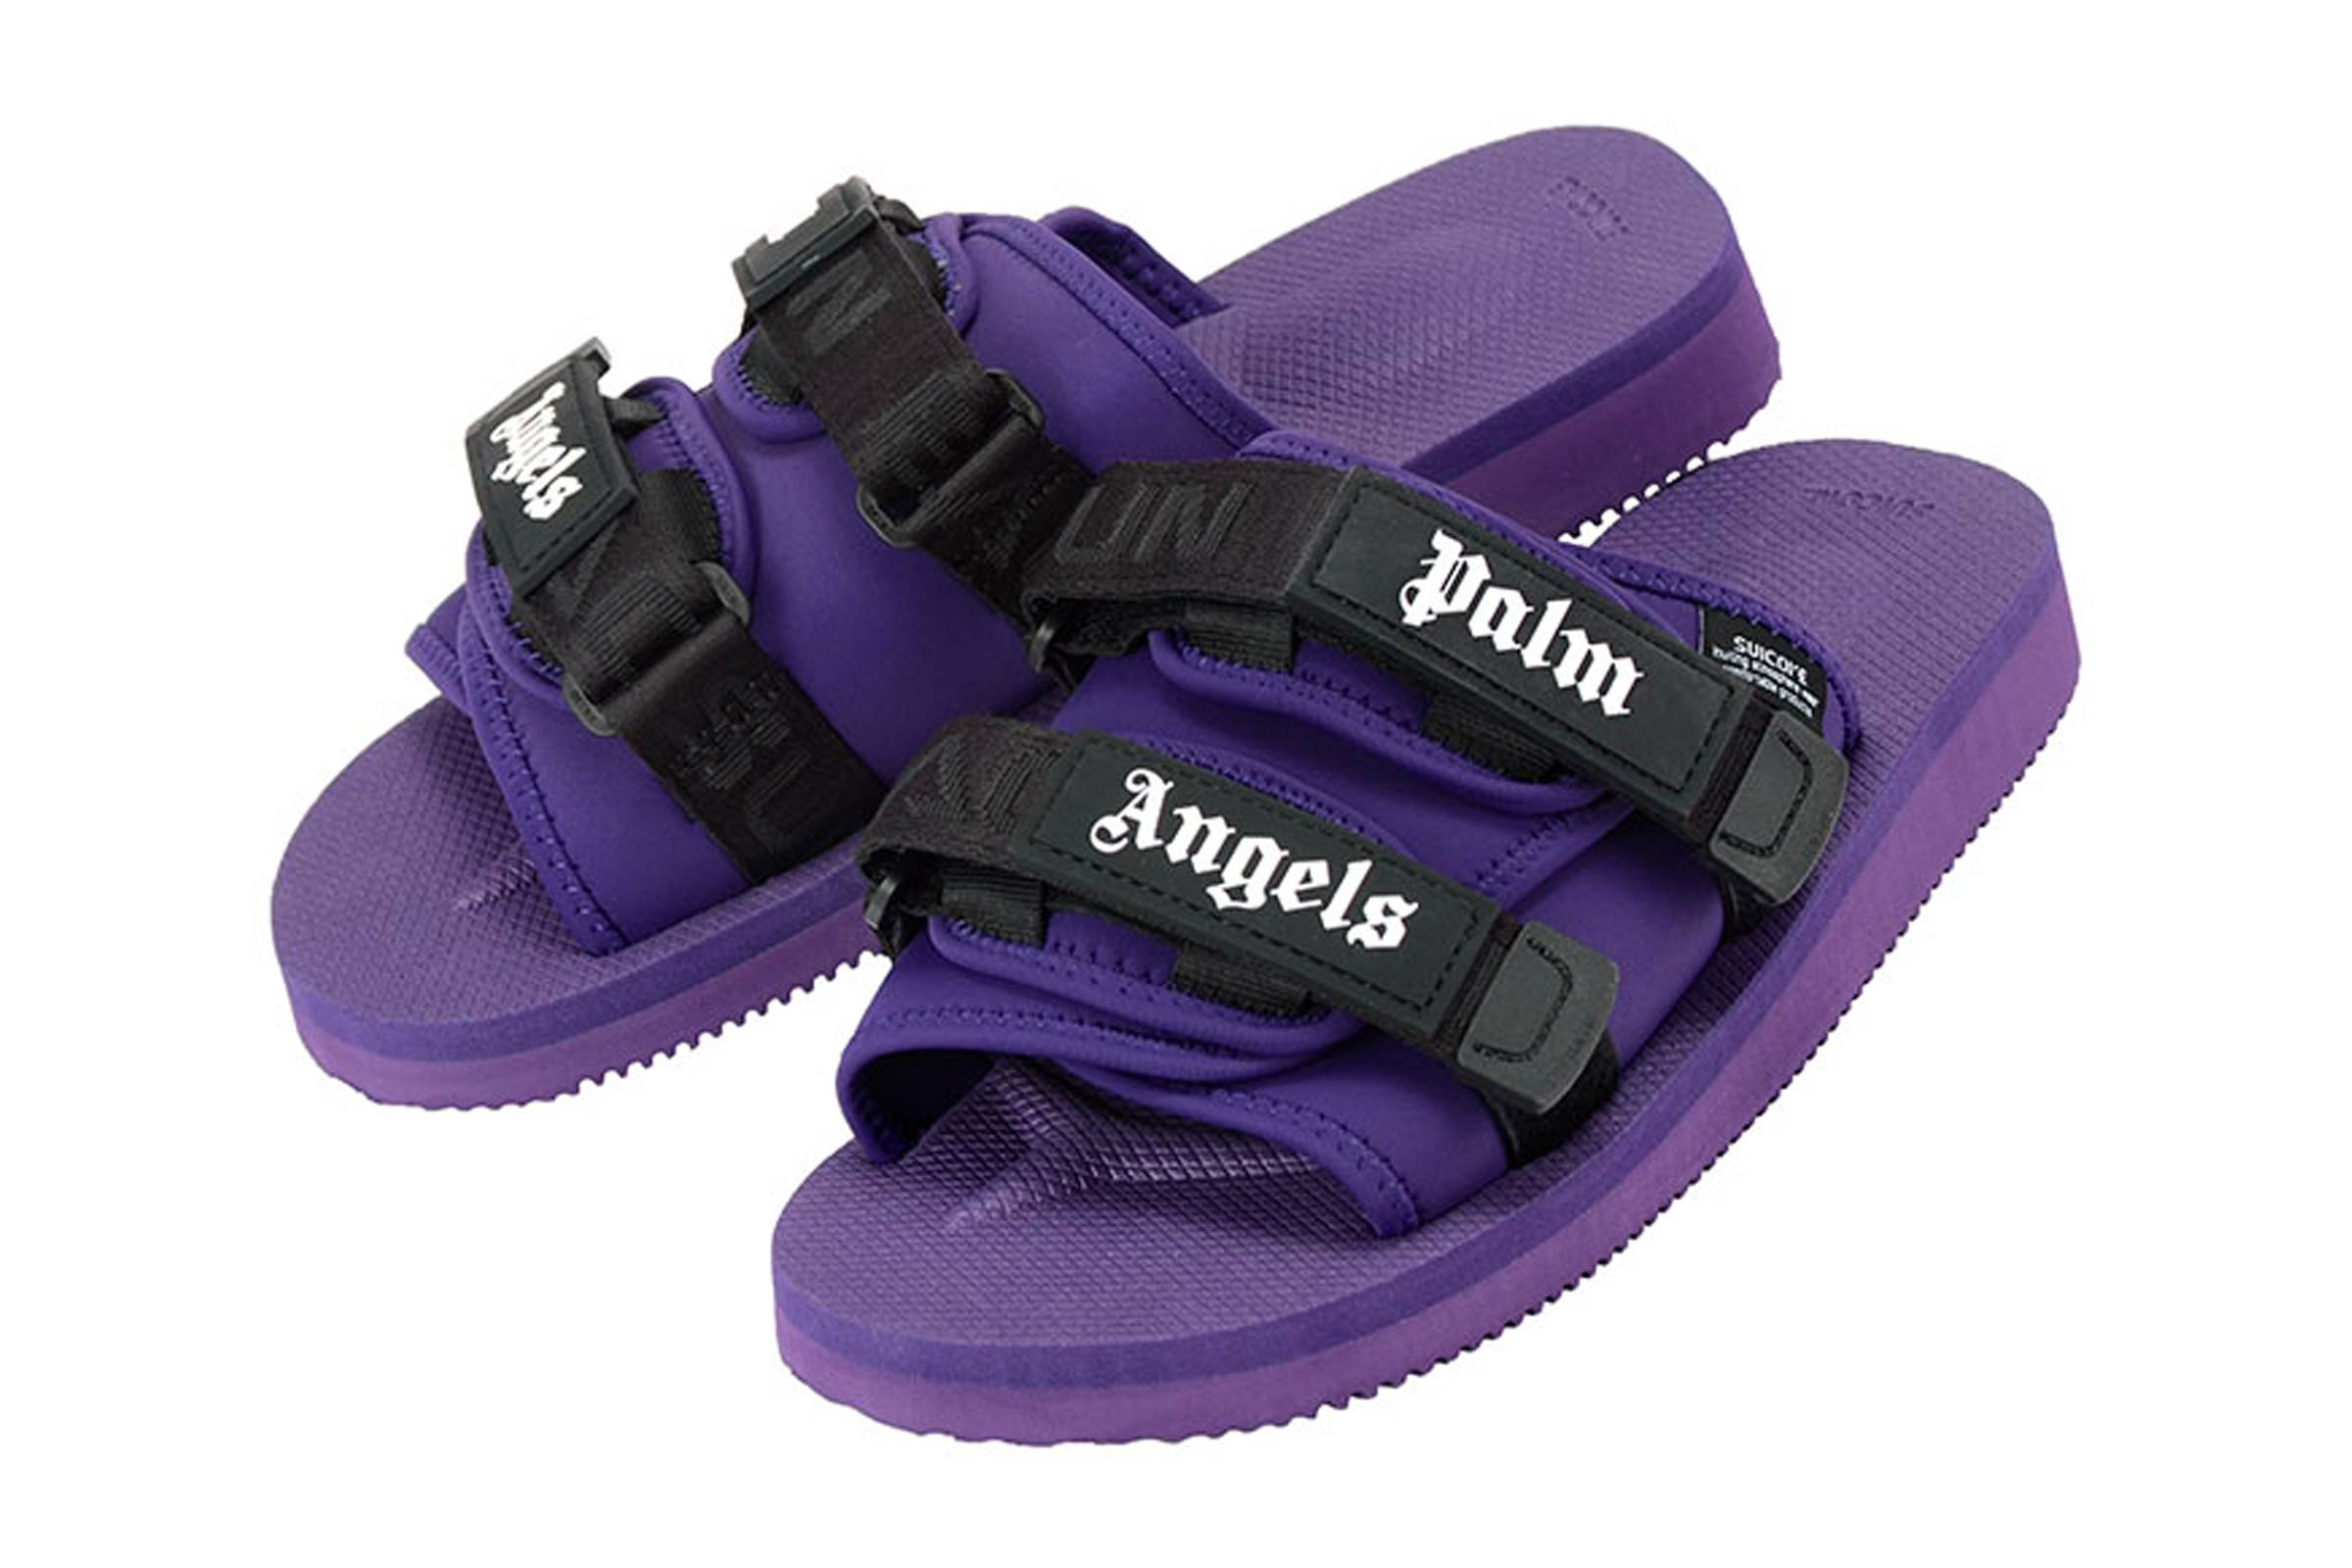 Palm Angels x Suicoke Sliders sandals